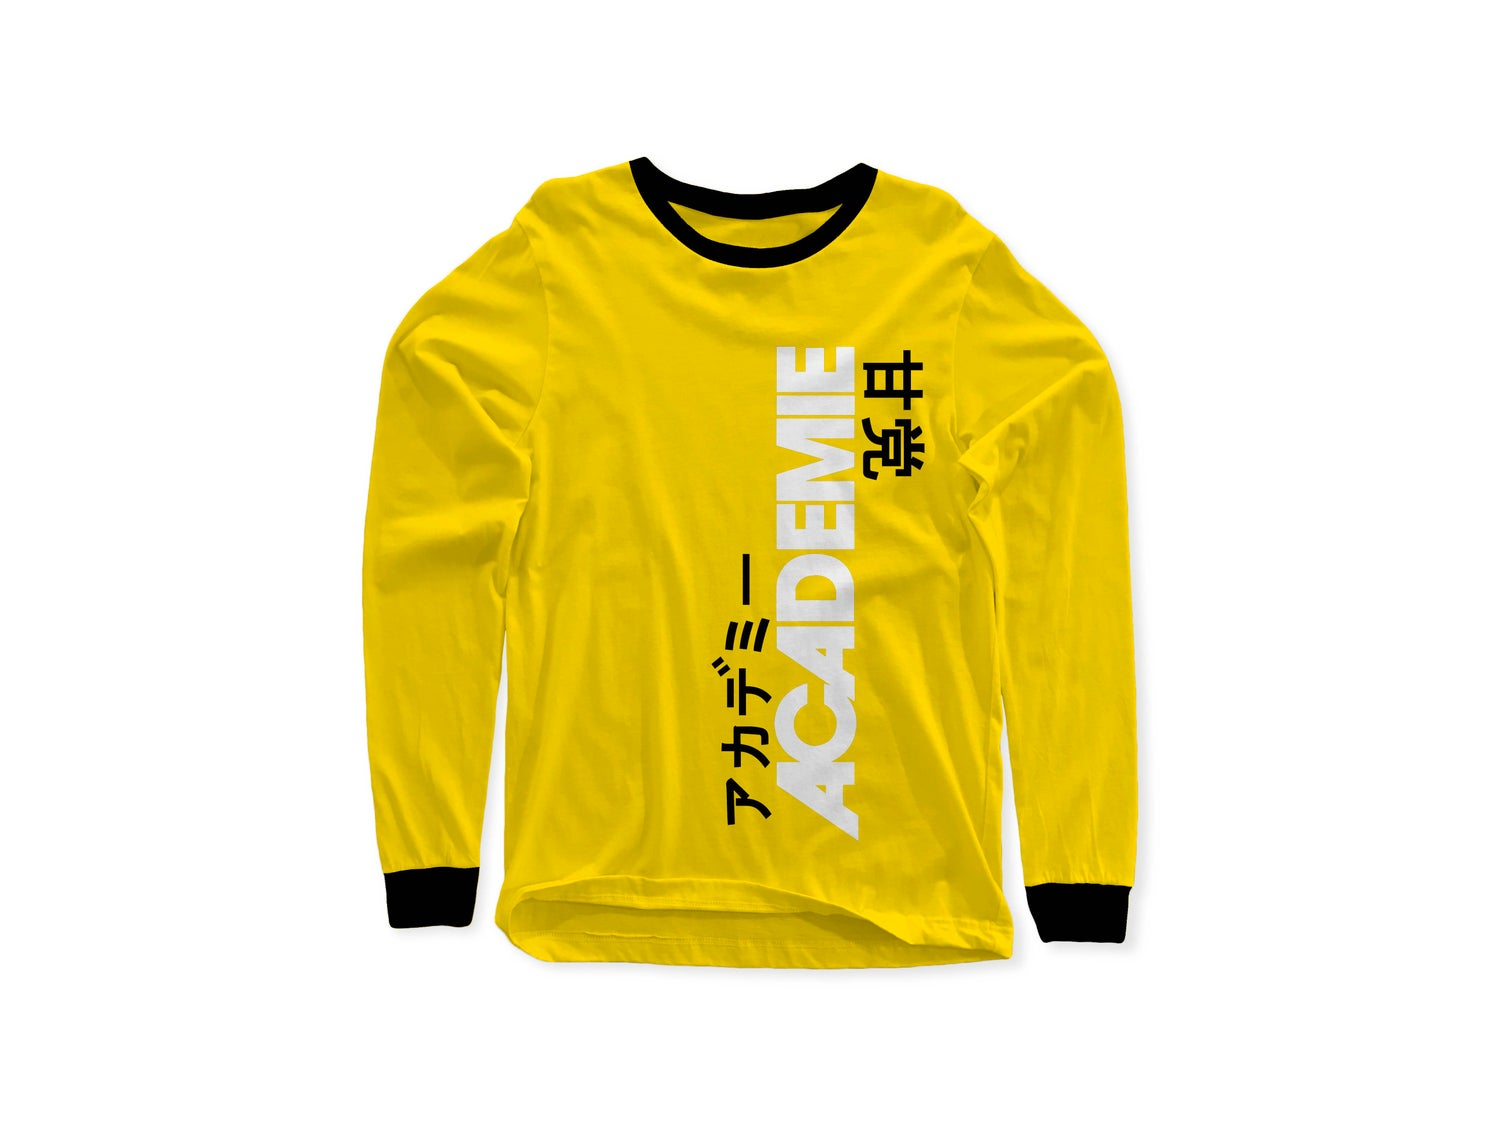 Image of ACADEMIE AMATO VERT LONG SLEEVE TEE YELLOW BLACK W/ WHITE